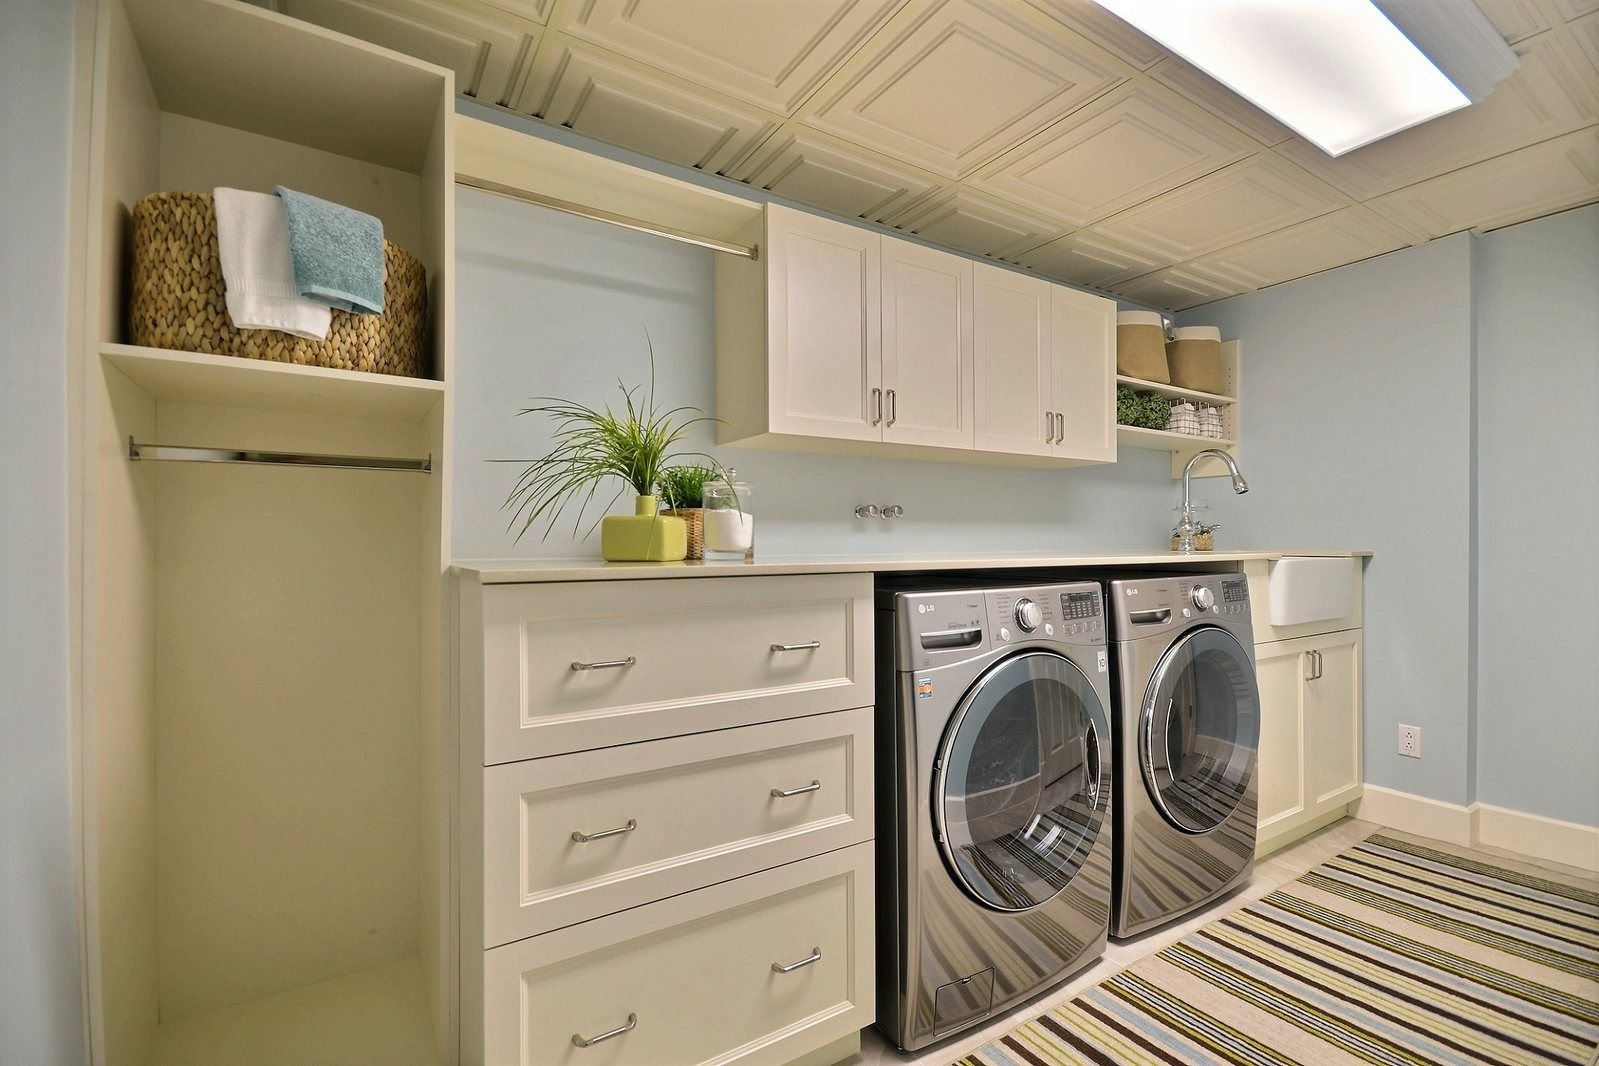 Ideas, laundry room faucets bronze laundry room faucets bronze basement laundry room with open shelf and bronze faucet build a 1599 x 1066  .